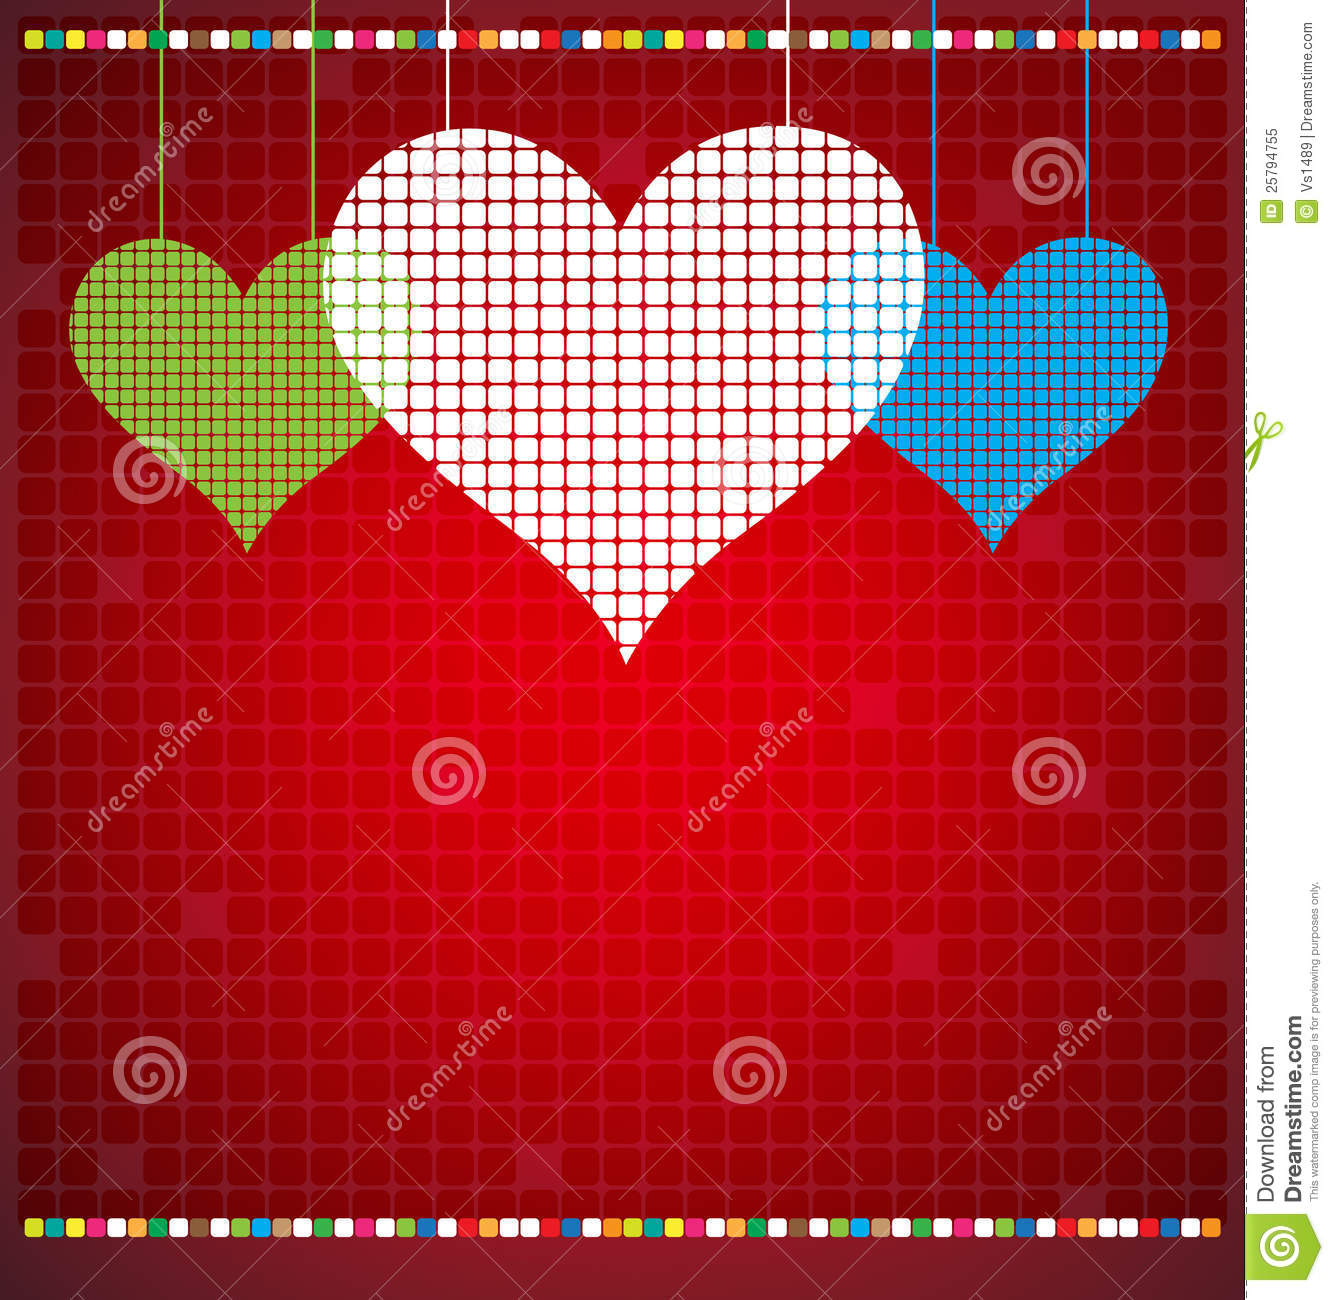 Abstract Color Pixel Heart Mosaic Background Stock Vector